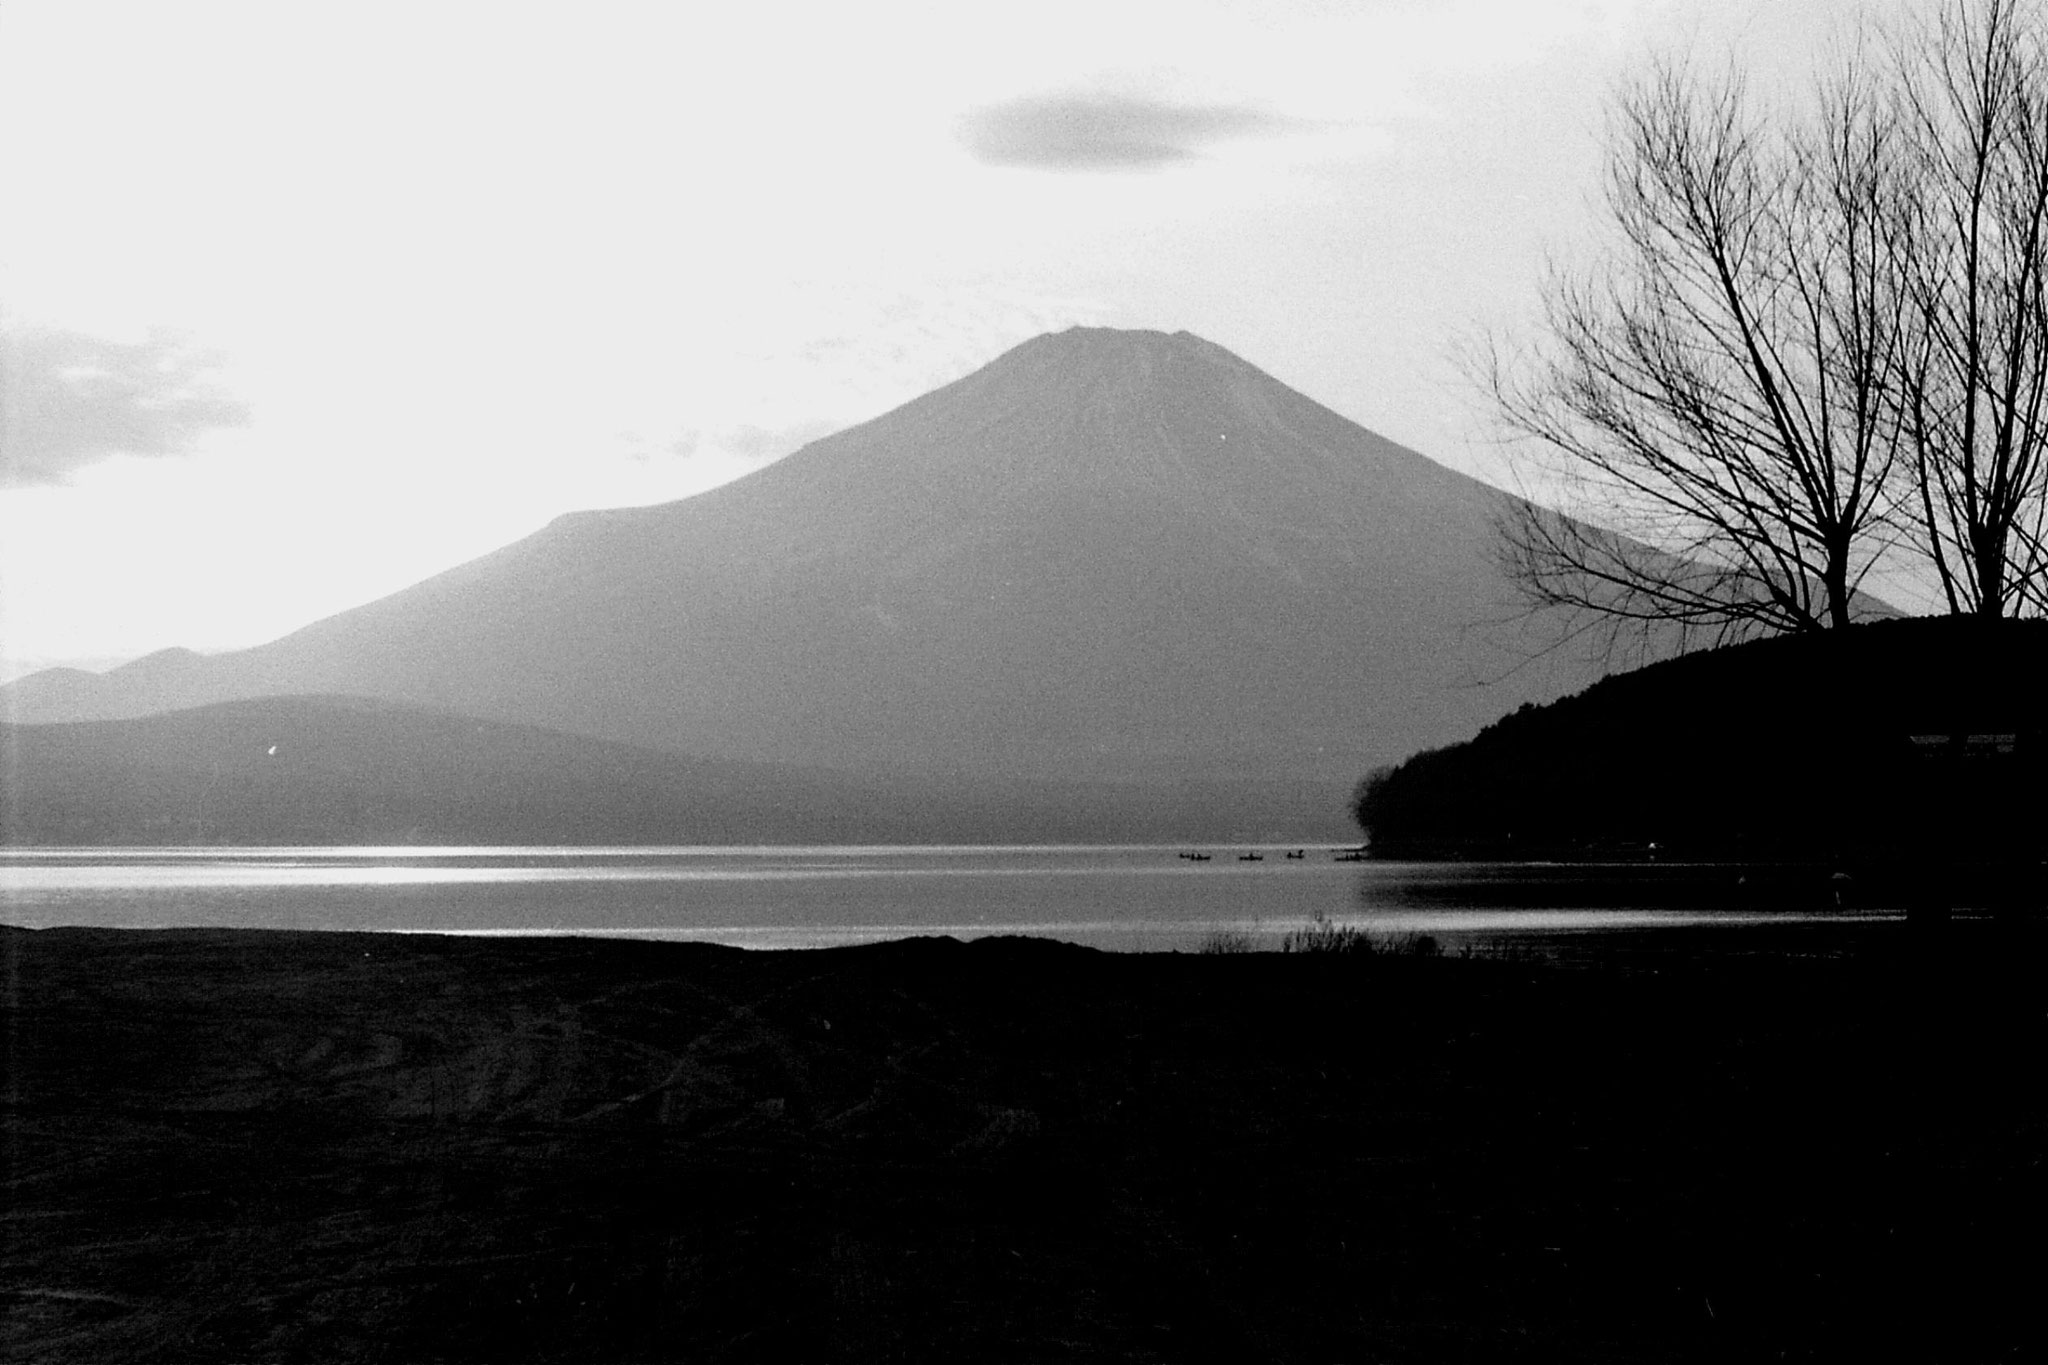 29/12/1988: 30:  Mt Fuji and Five Lakes area